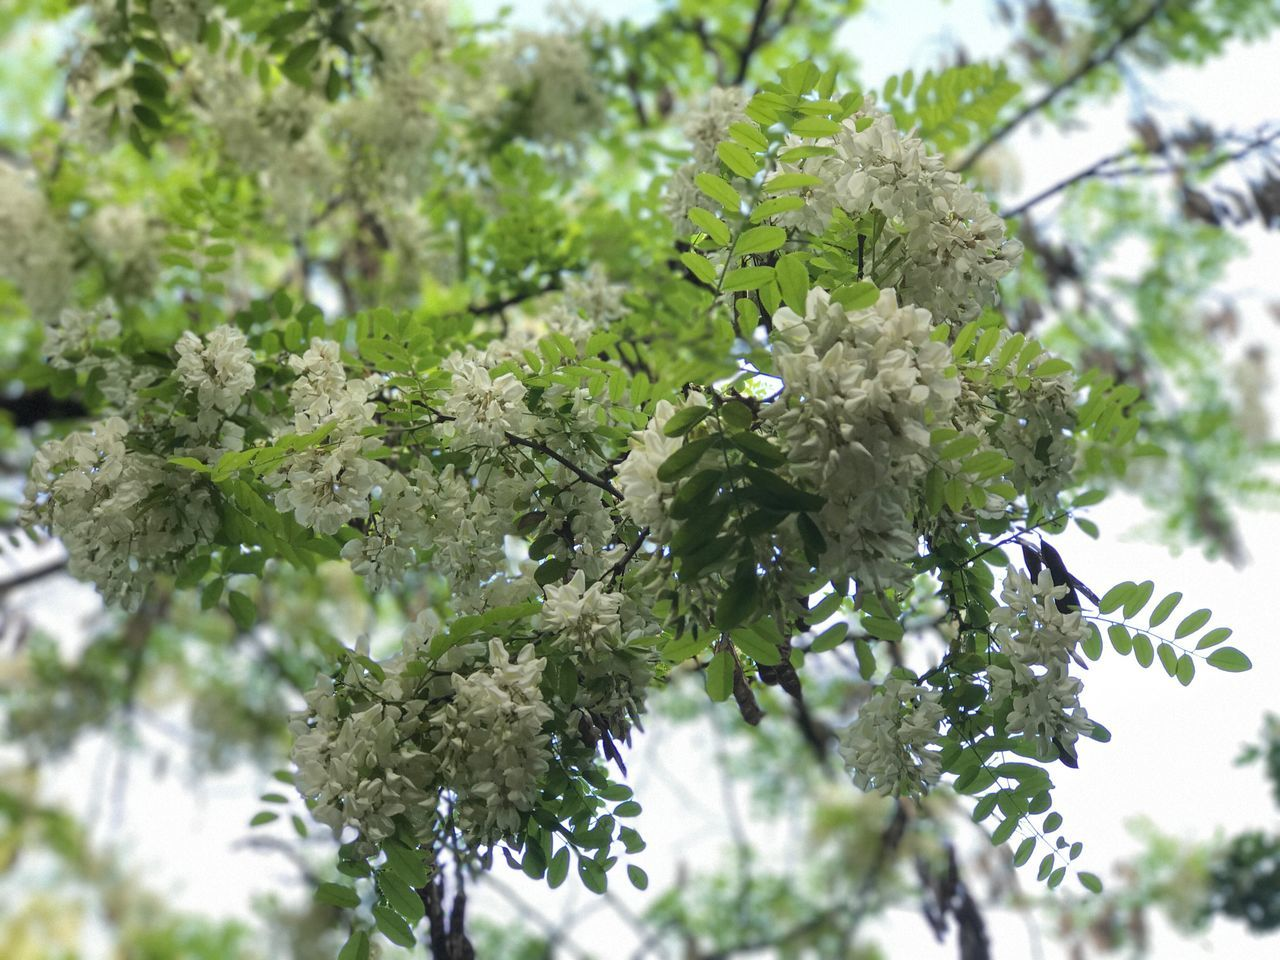 Tree Nature Growth Blossom Green Color No People Flower Branch Leaf Day Beauty In Nature Plant Freshness Outdoors Low Angle View Fragility Close-up Flower Head Acacia Acacia Tree Acacia Flowers Springtime